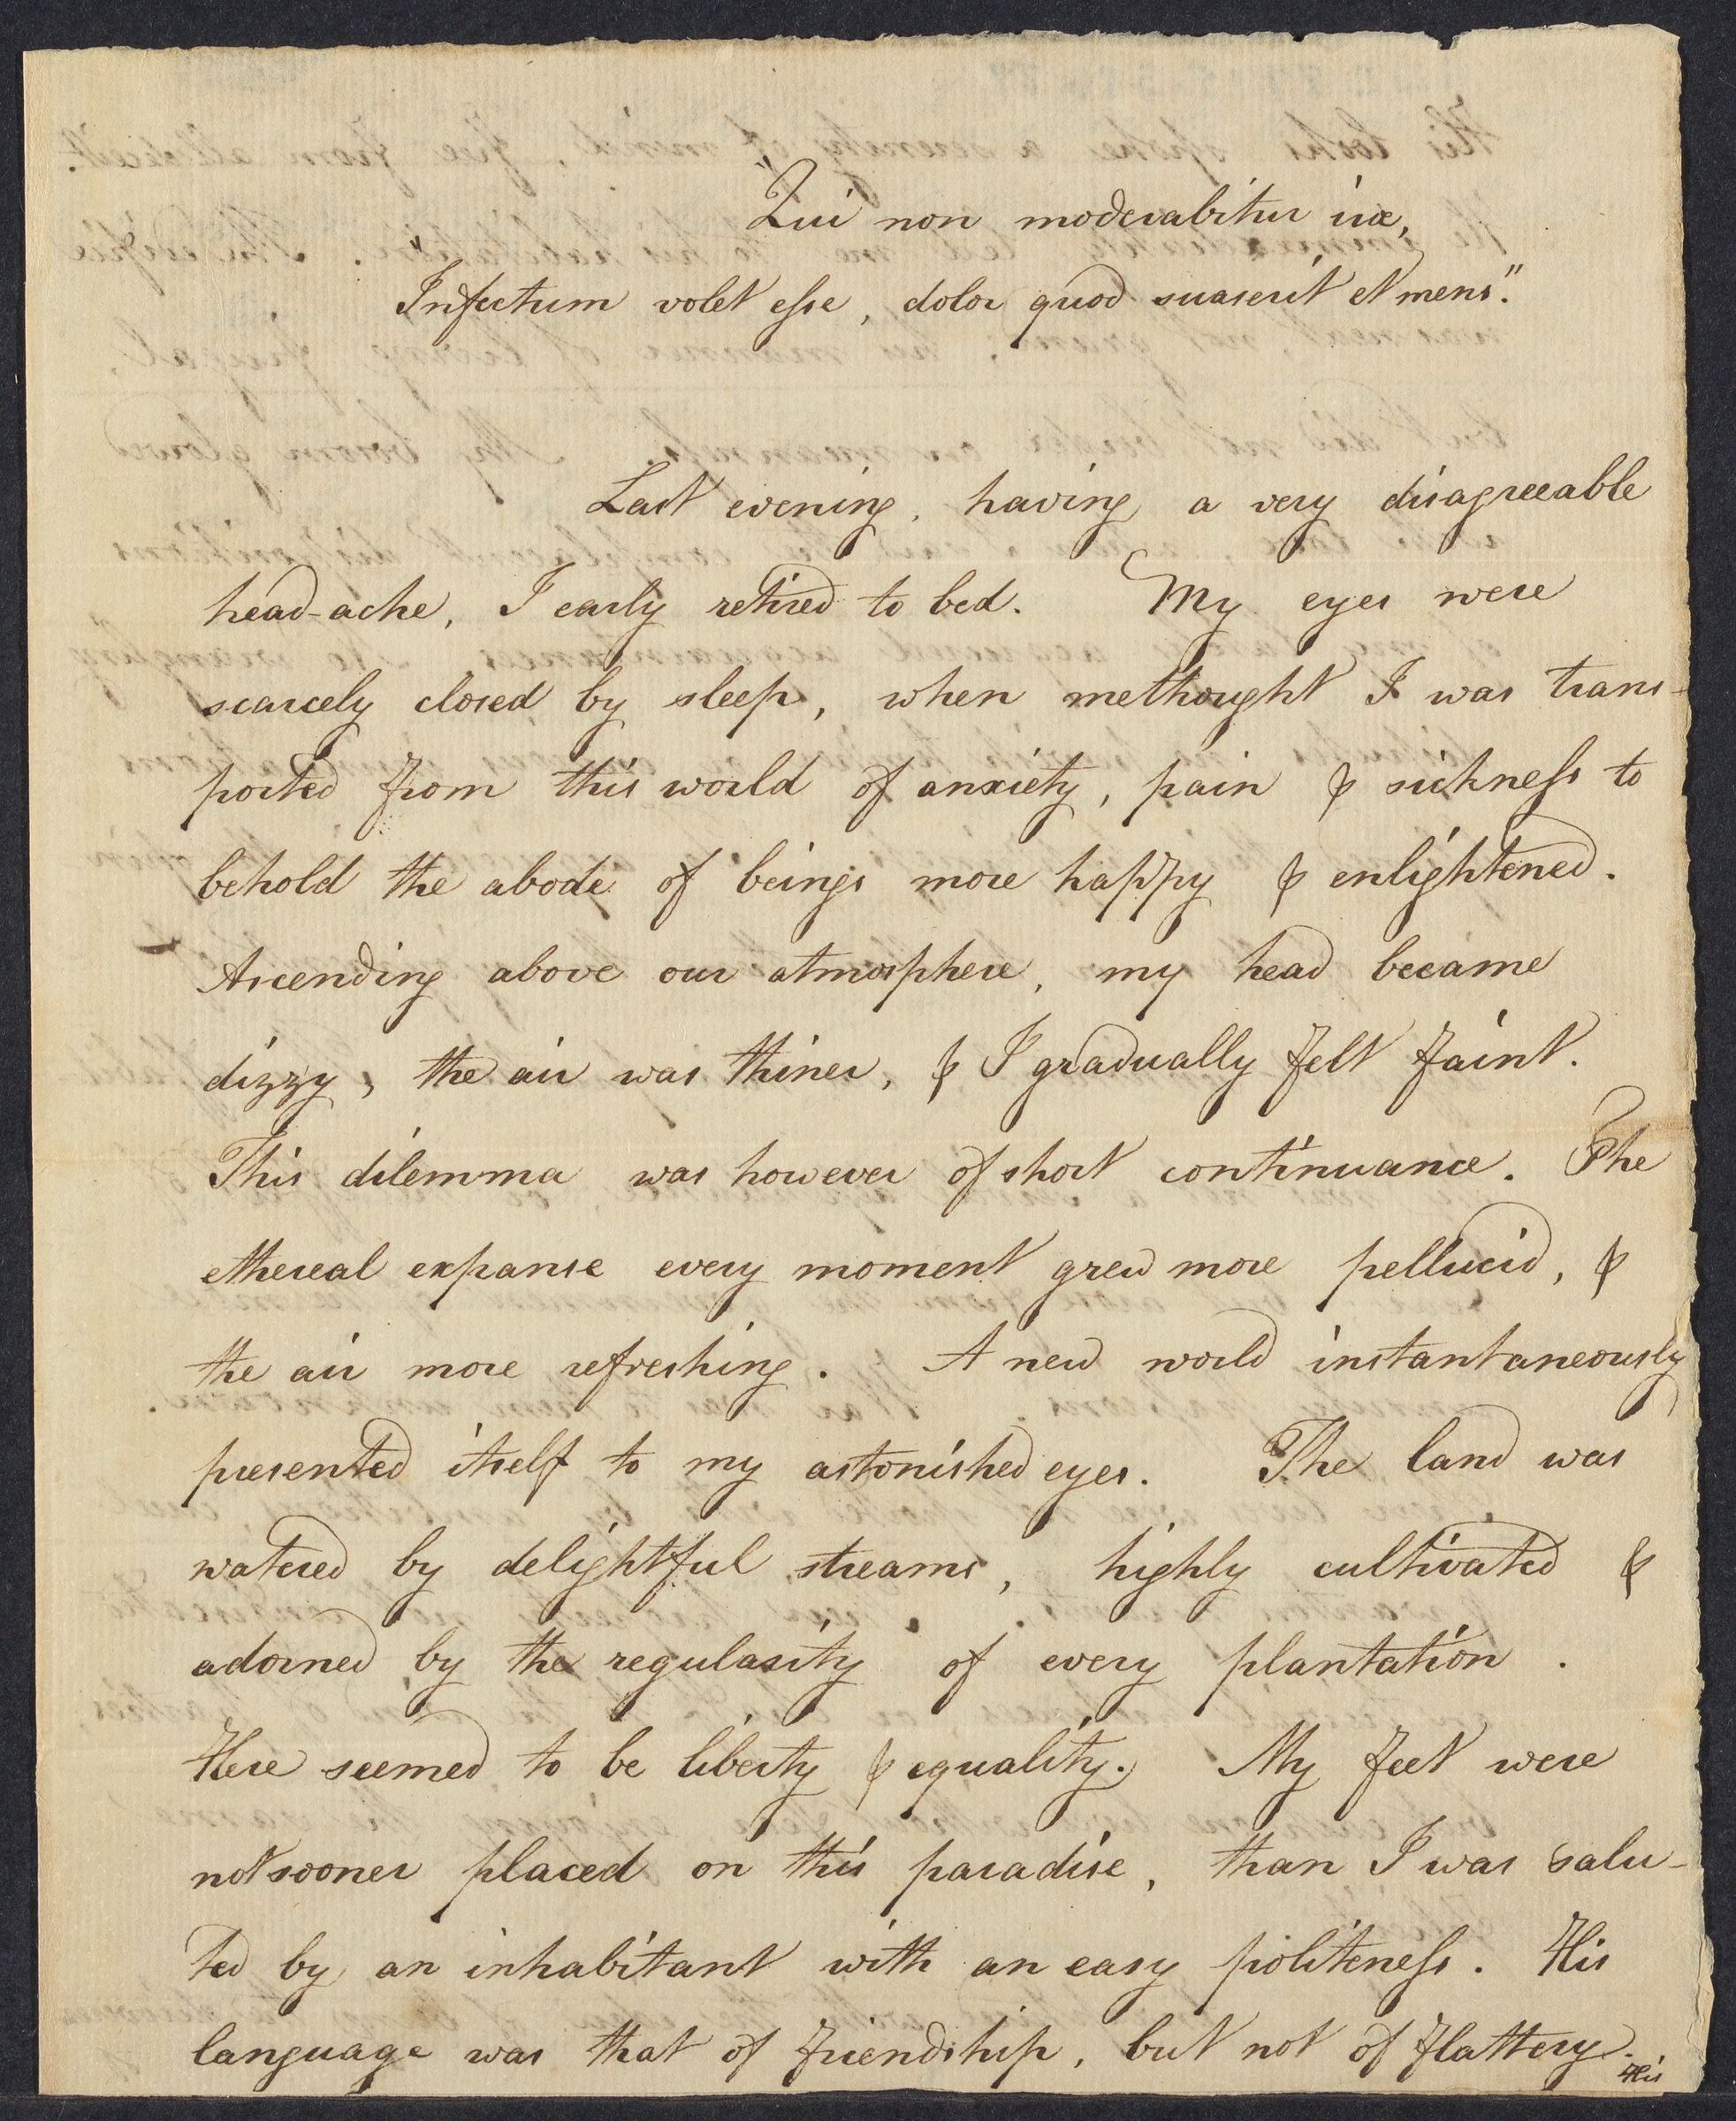 Student essay composed by Edmund Toppan, 1795